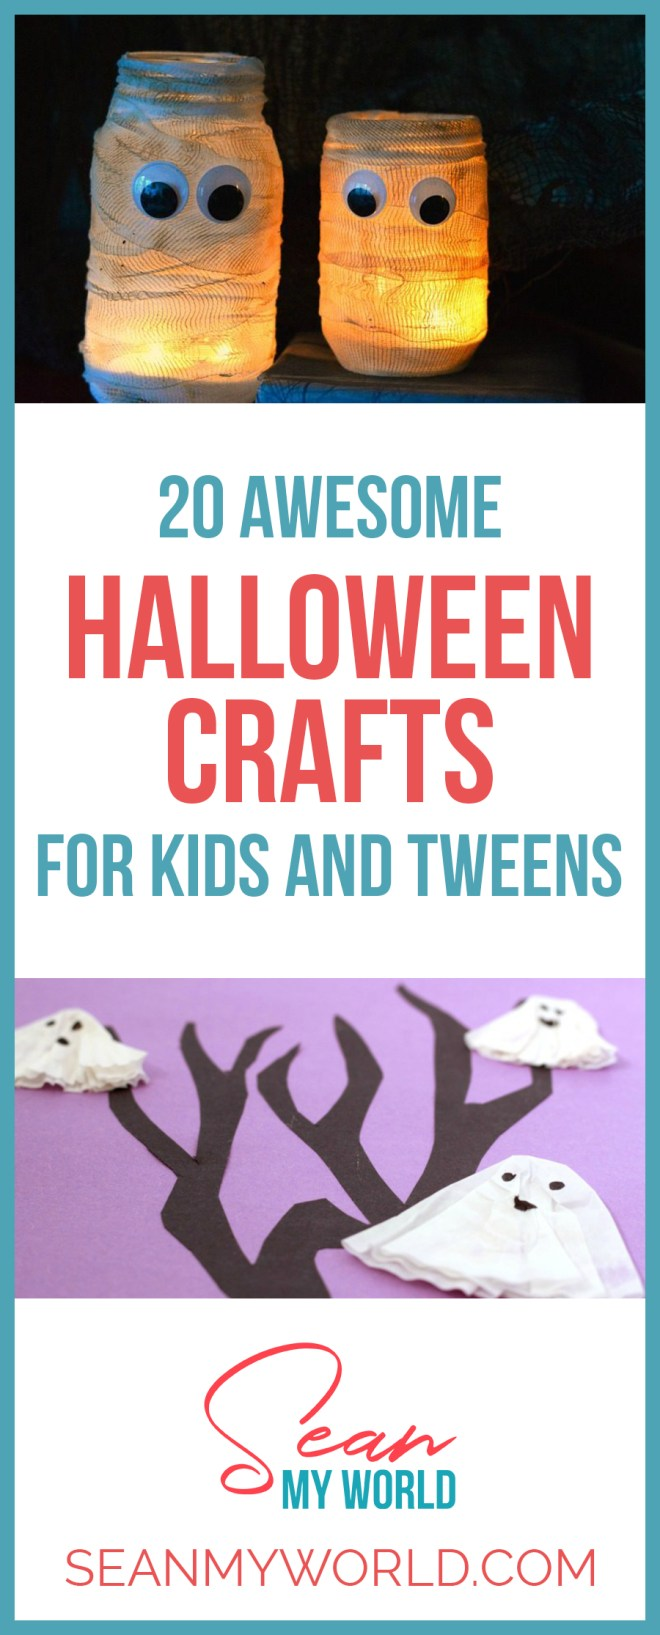 Looking for Halloween crafts for children? Then check out these 20 awesome Halloween crafts for tweens, teens and kids. They'll love these!